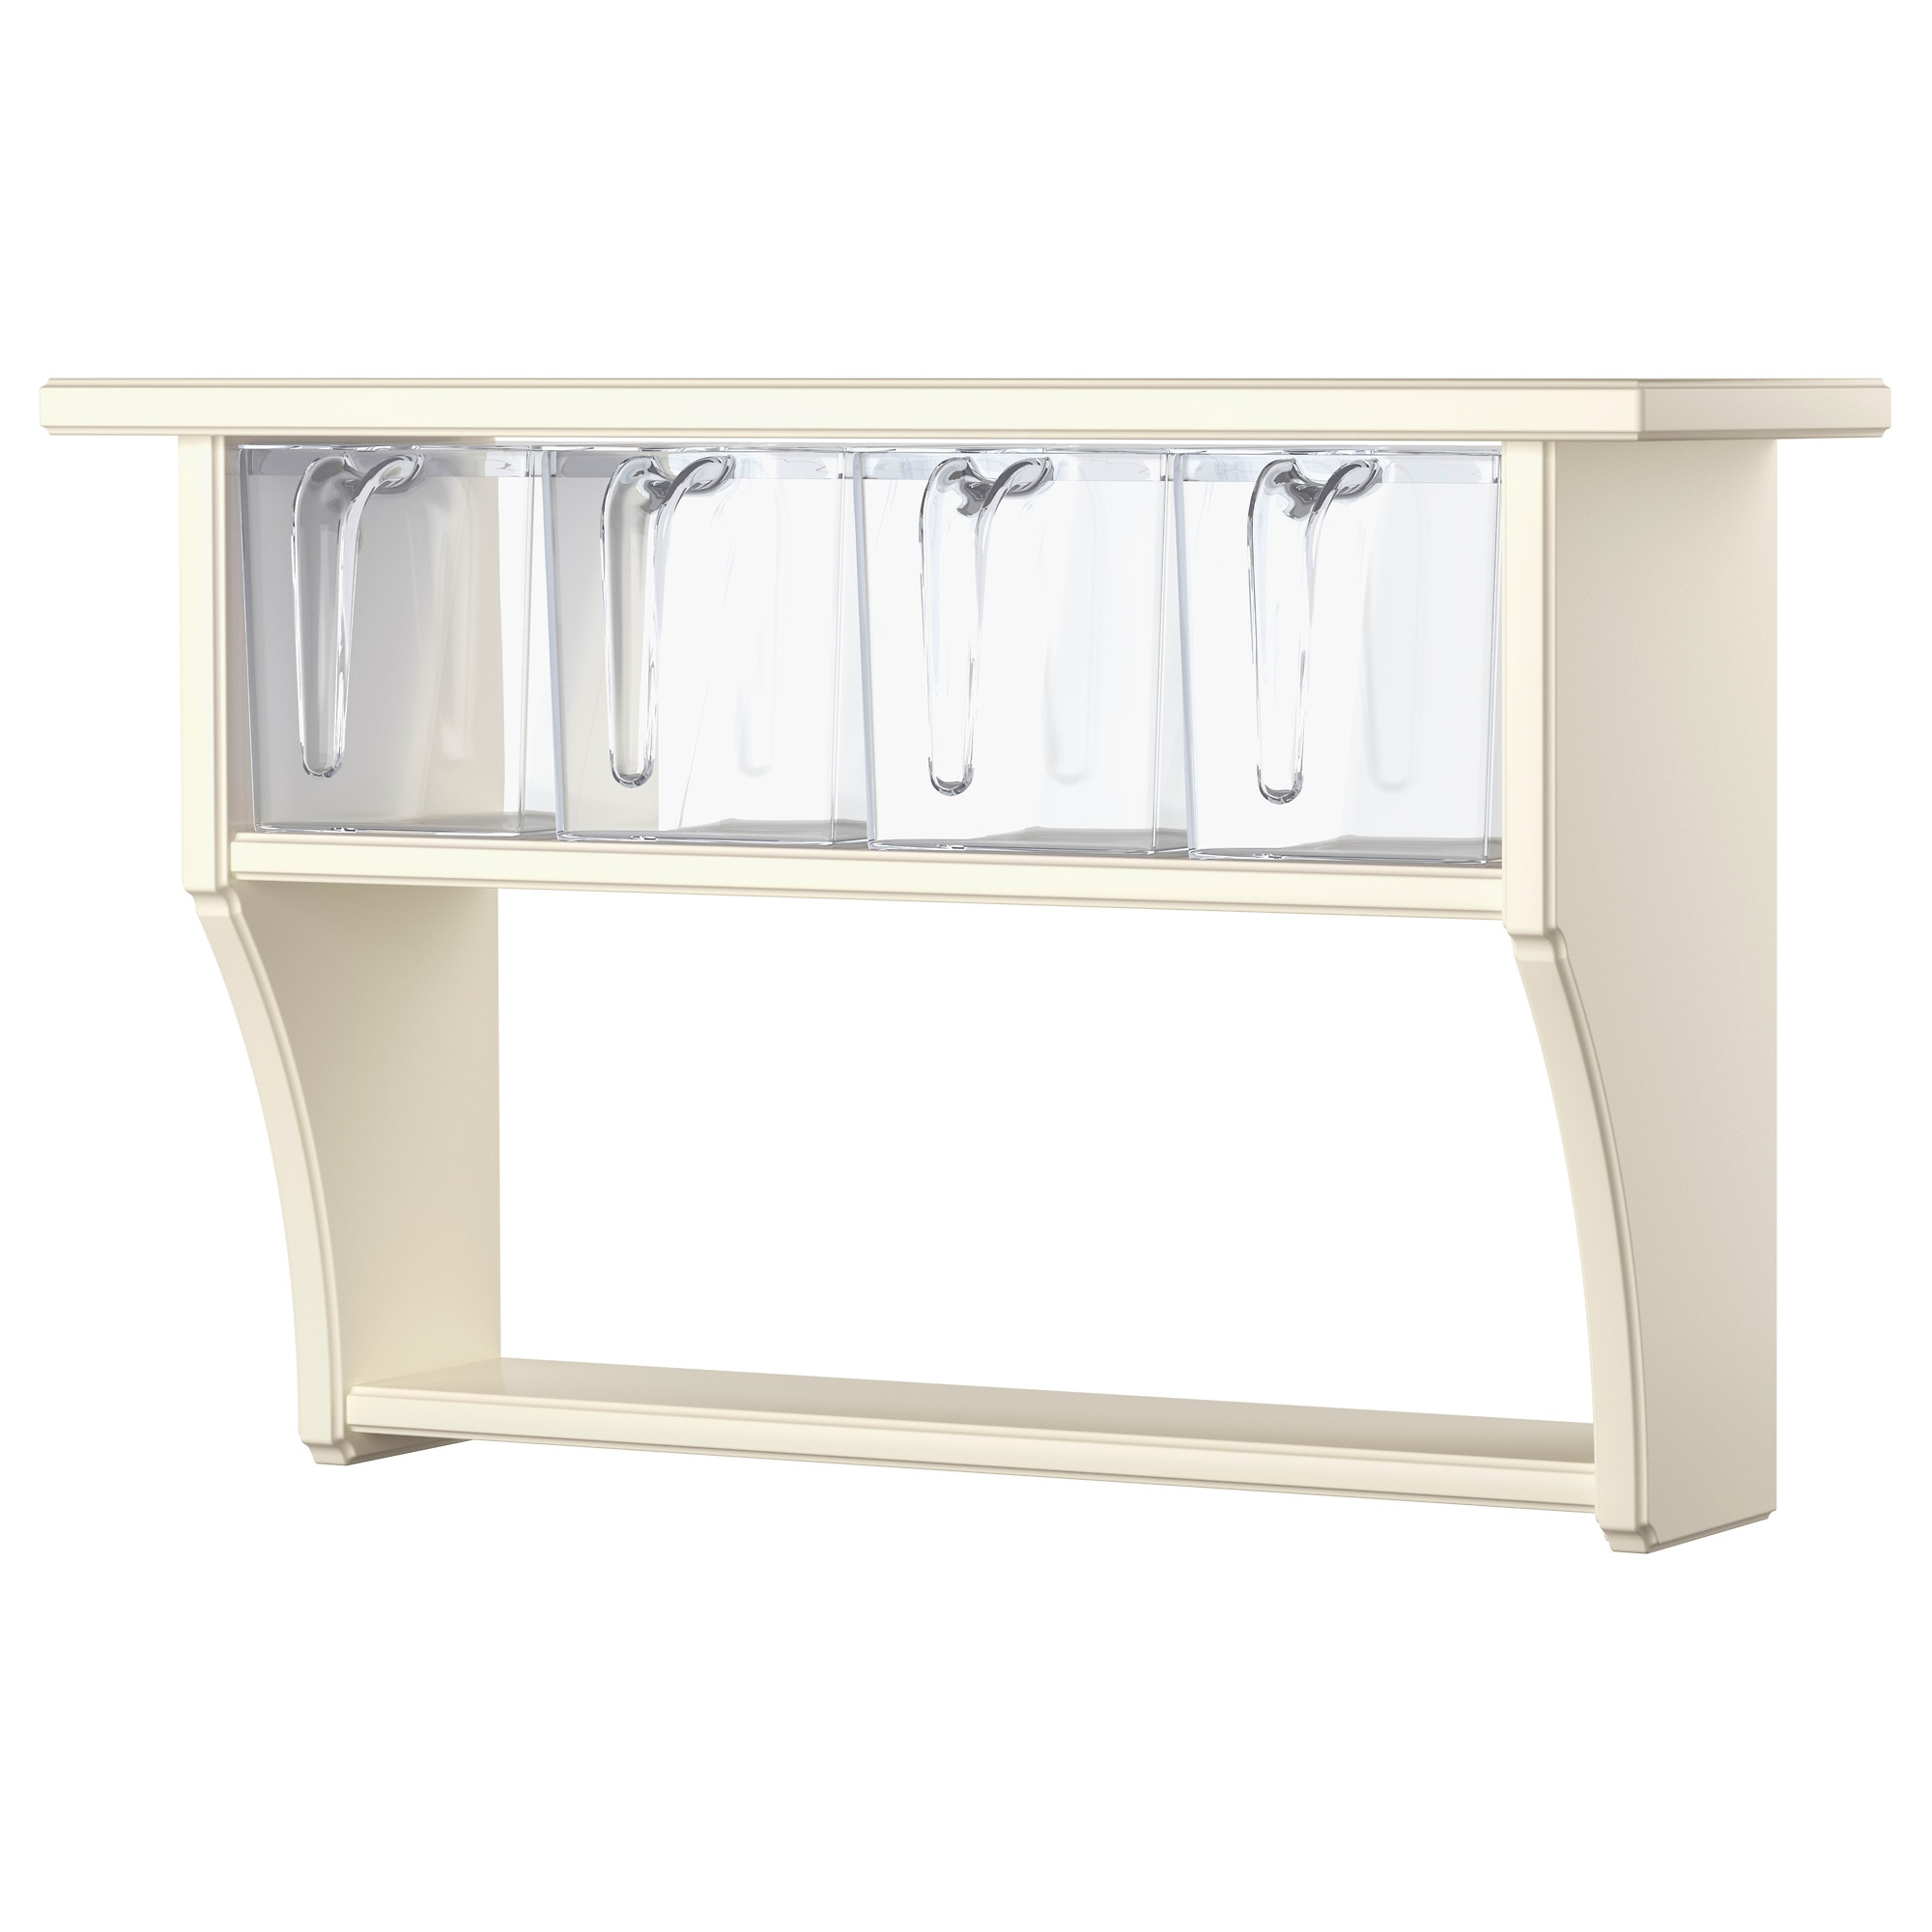 stenstorp wall shelf with drawers ikea - Wall Mounted Kitchen Shelf